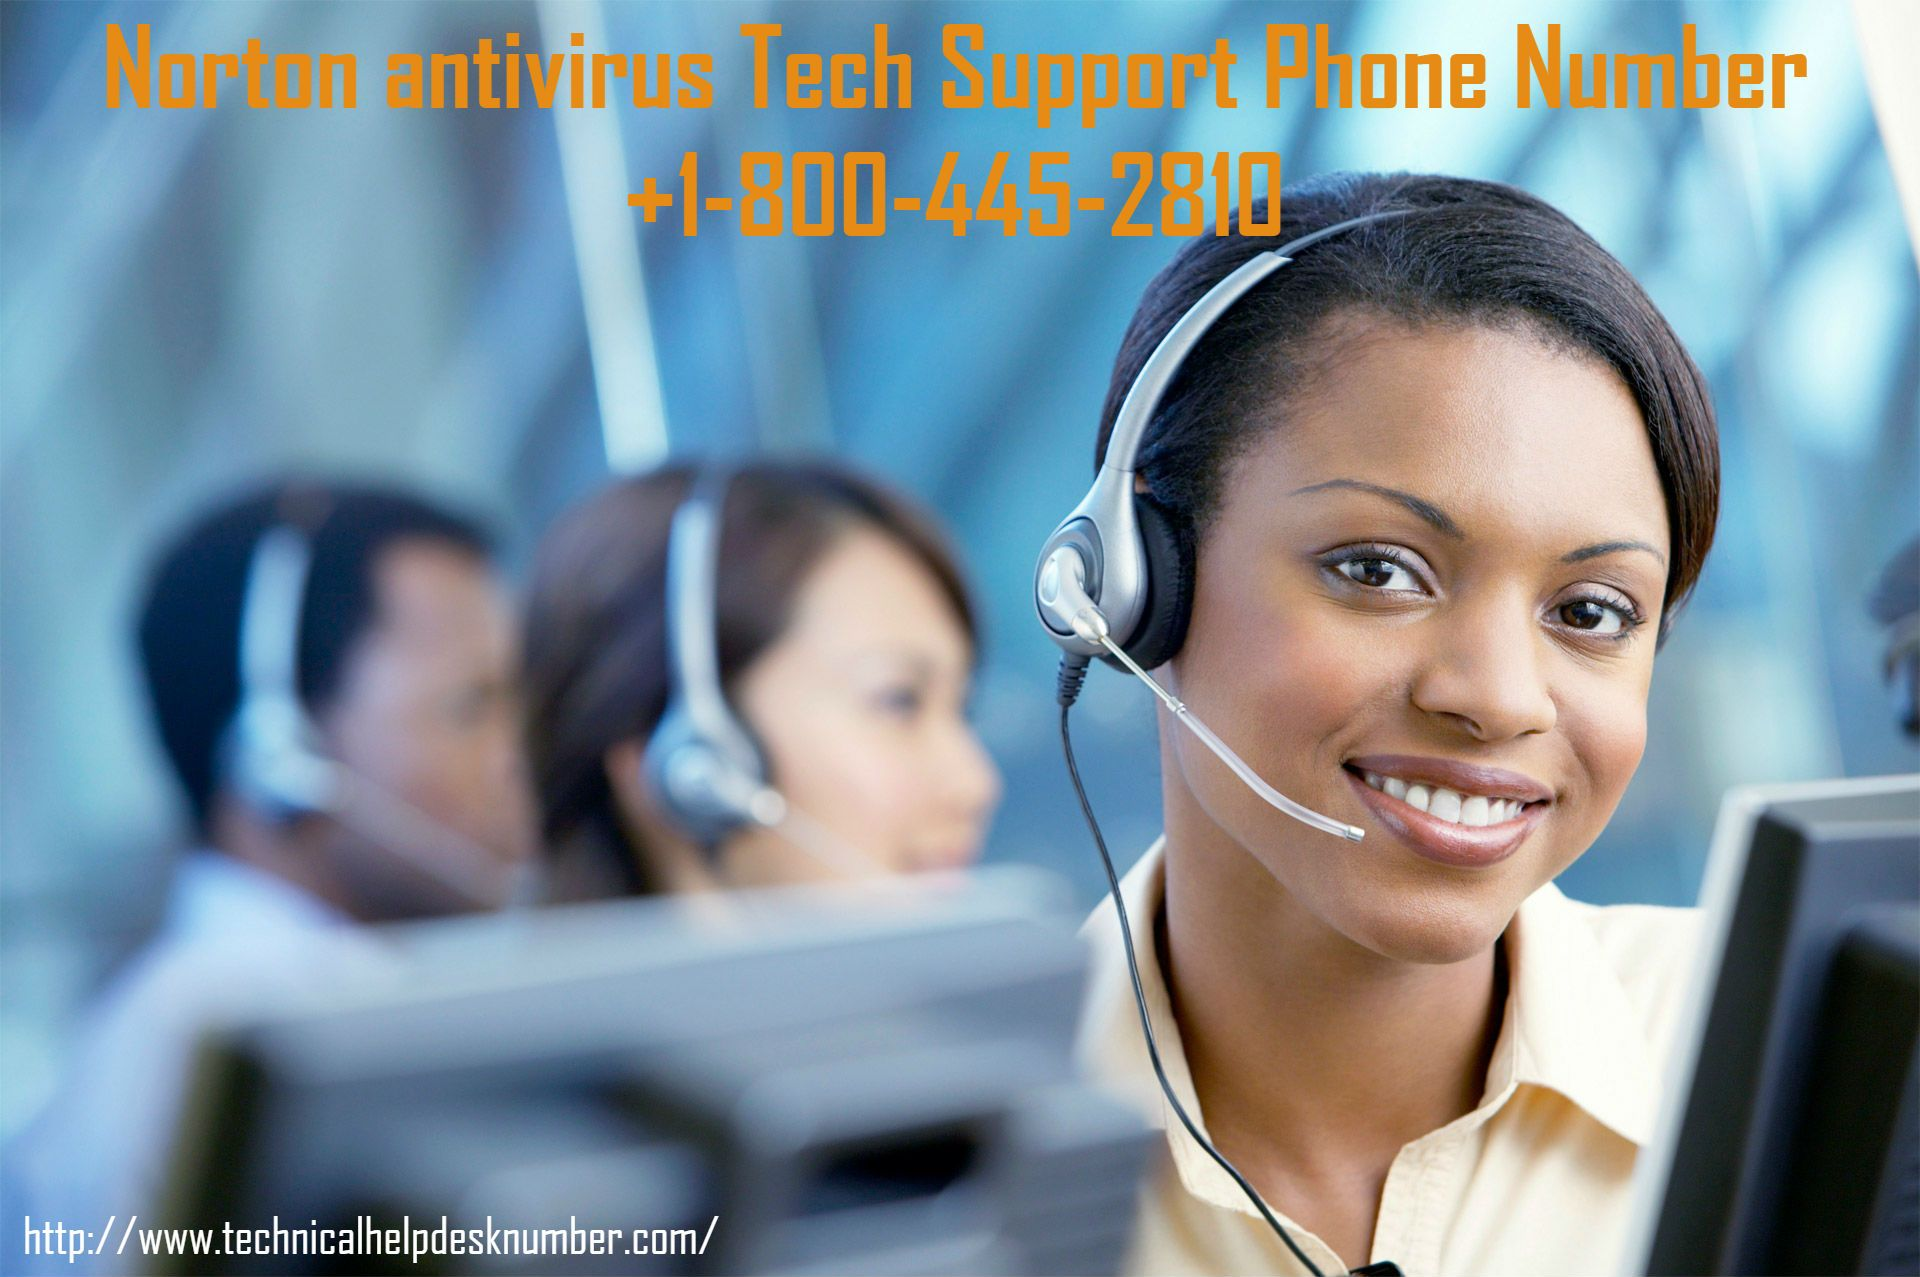 Best technician for norton technical support 1800445